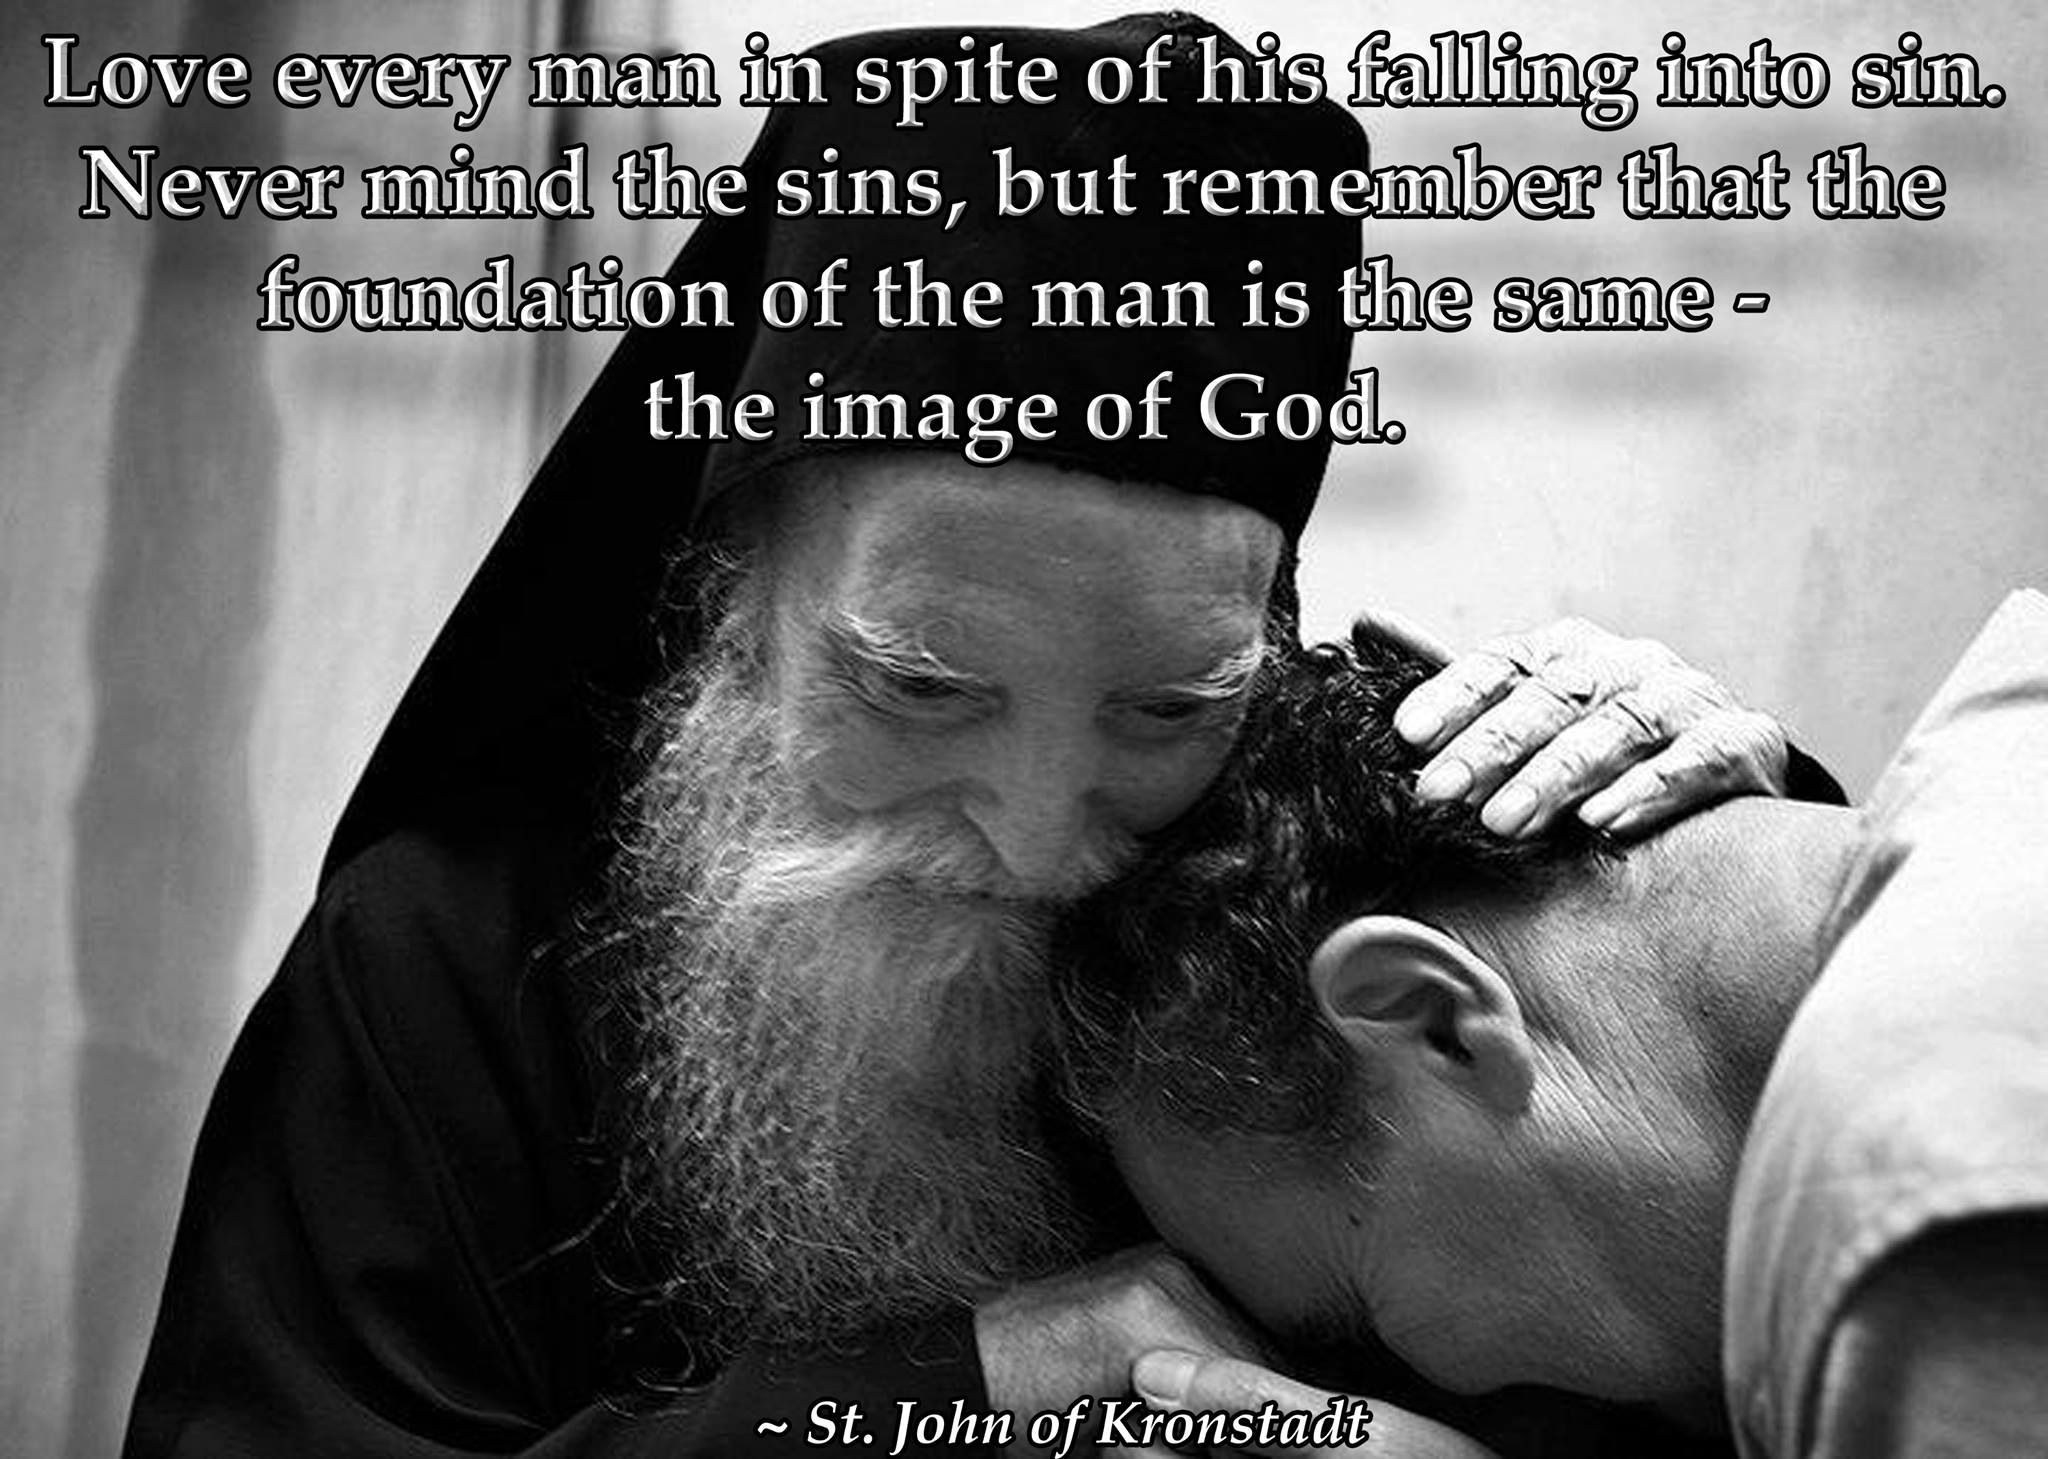 Love every man in spite of his falling into sin Never mind the sins